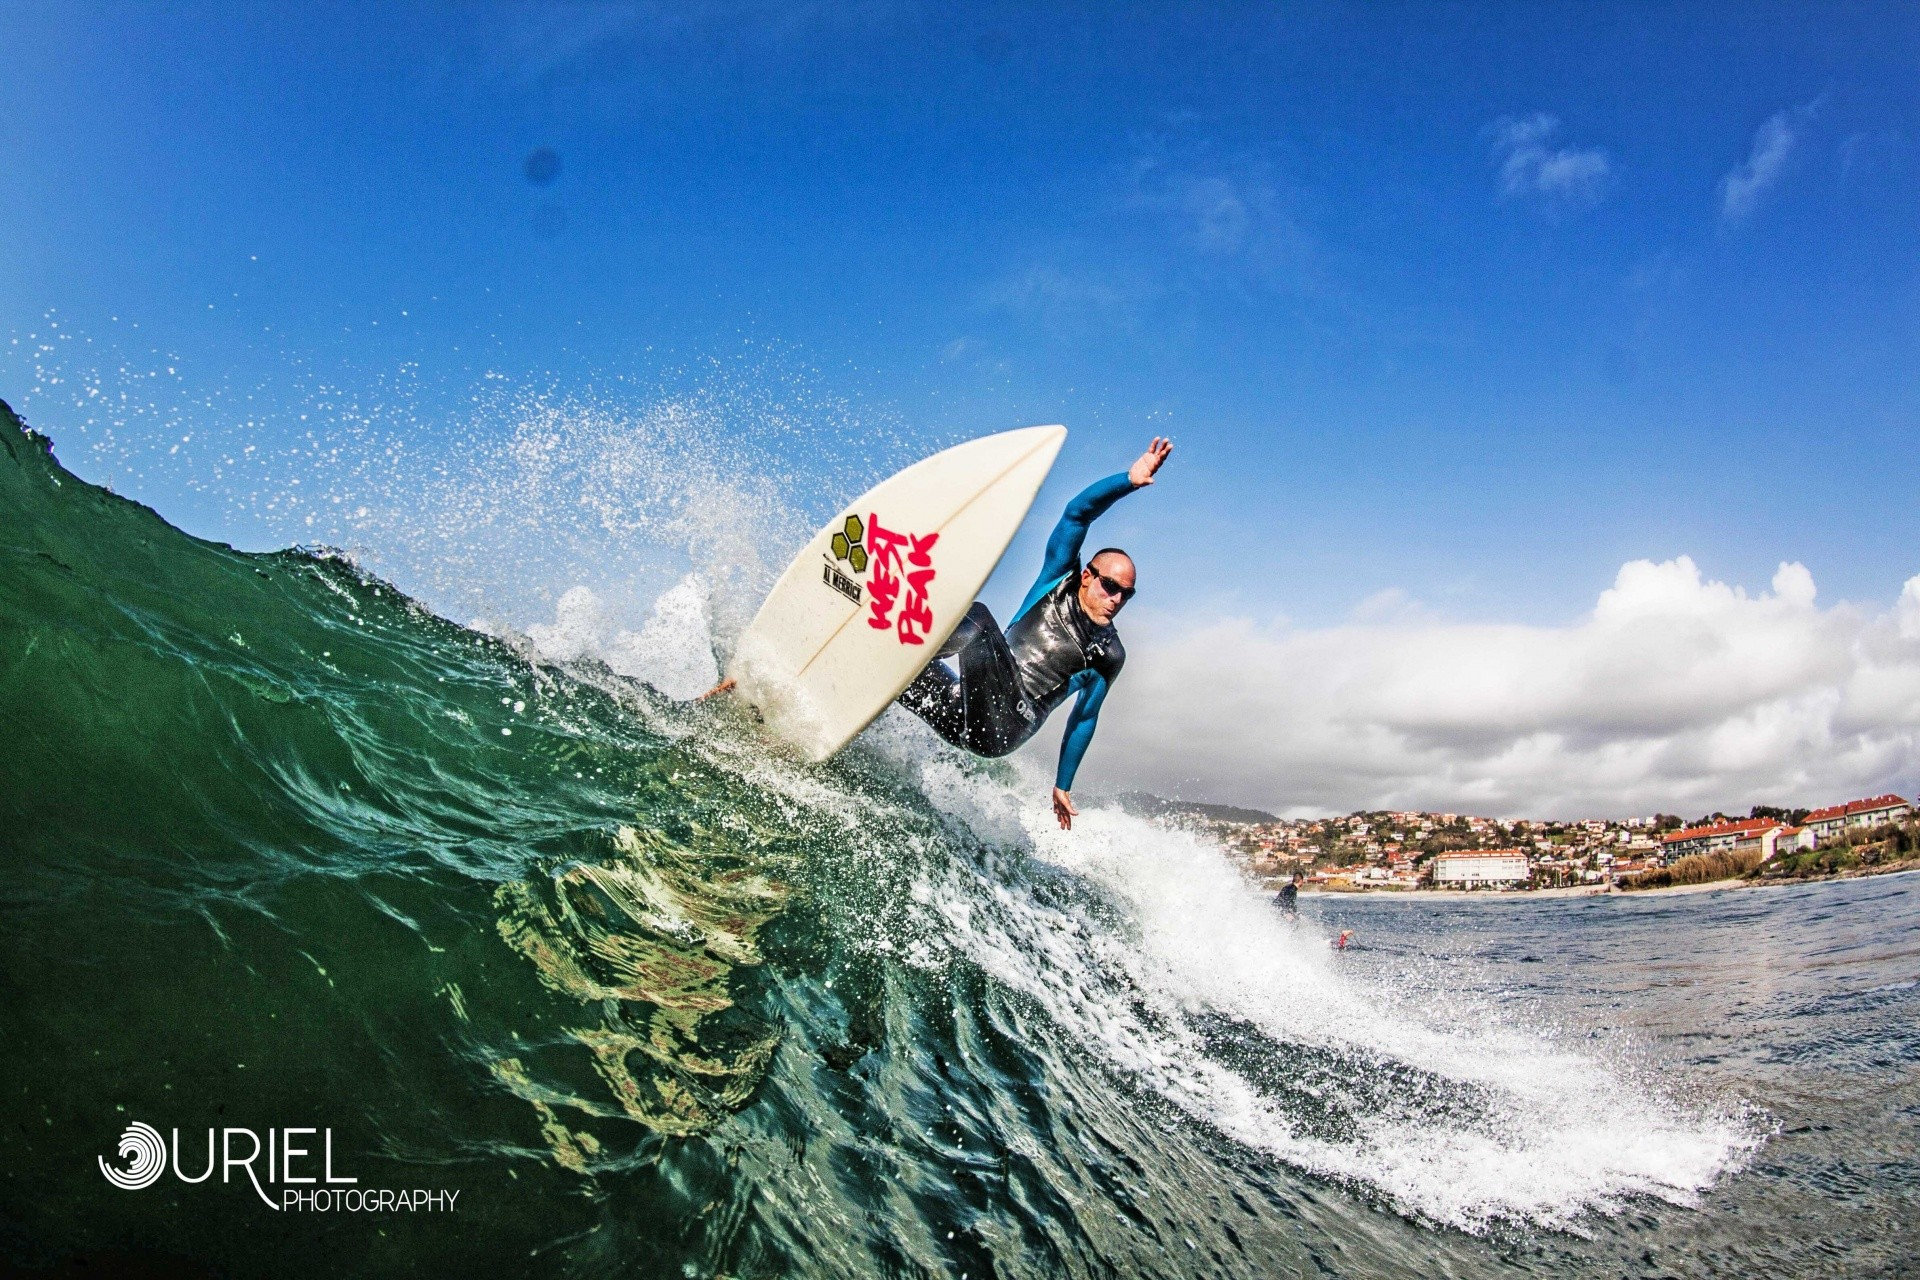 Uriel Surf Photographhy's photo of Patos